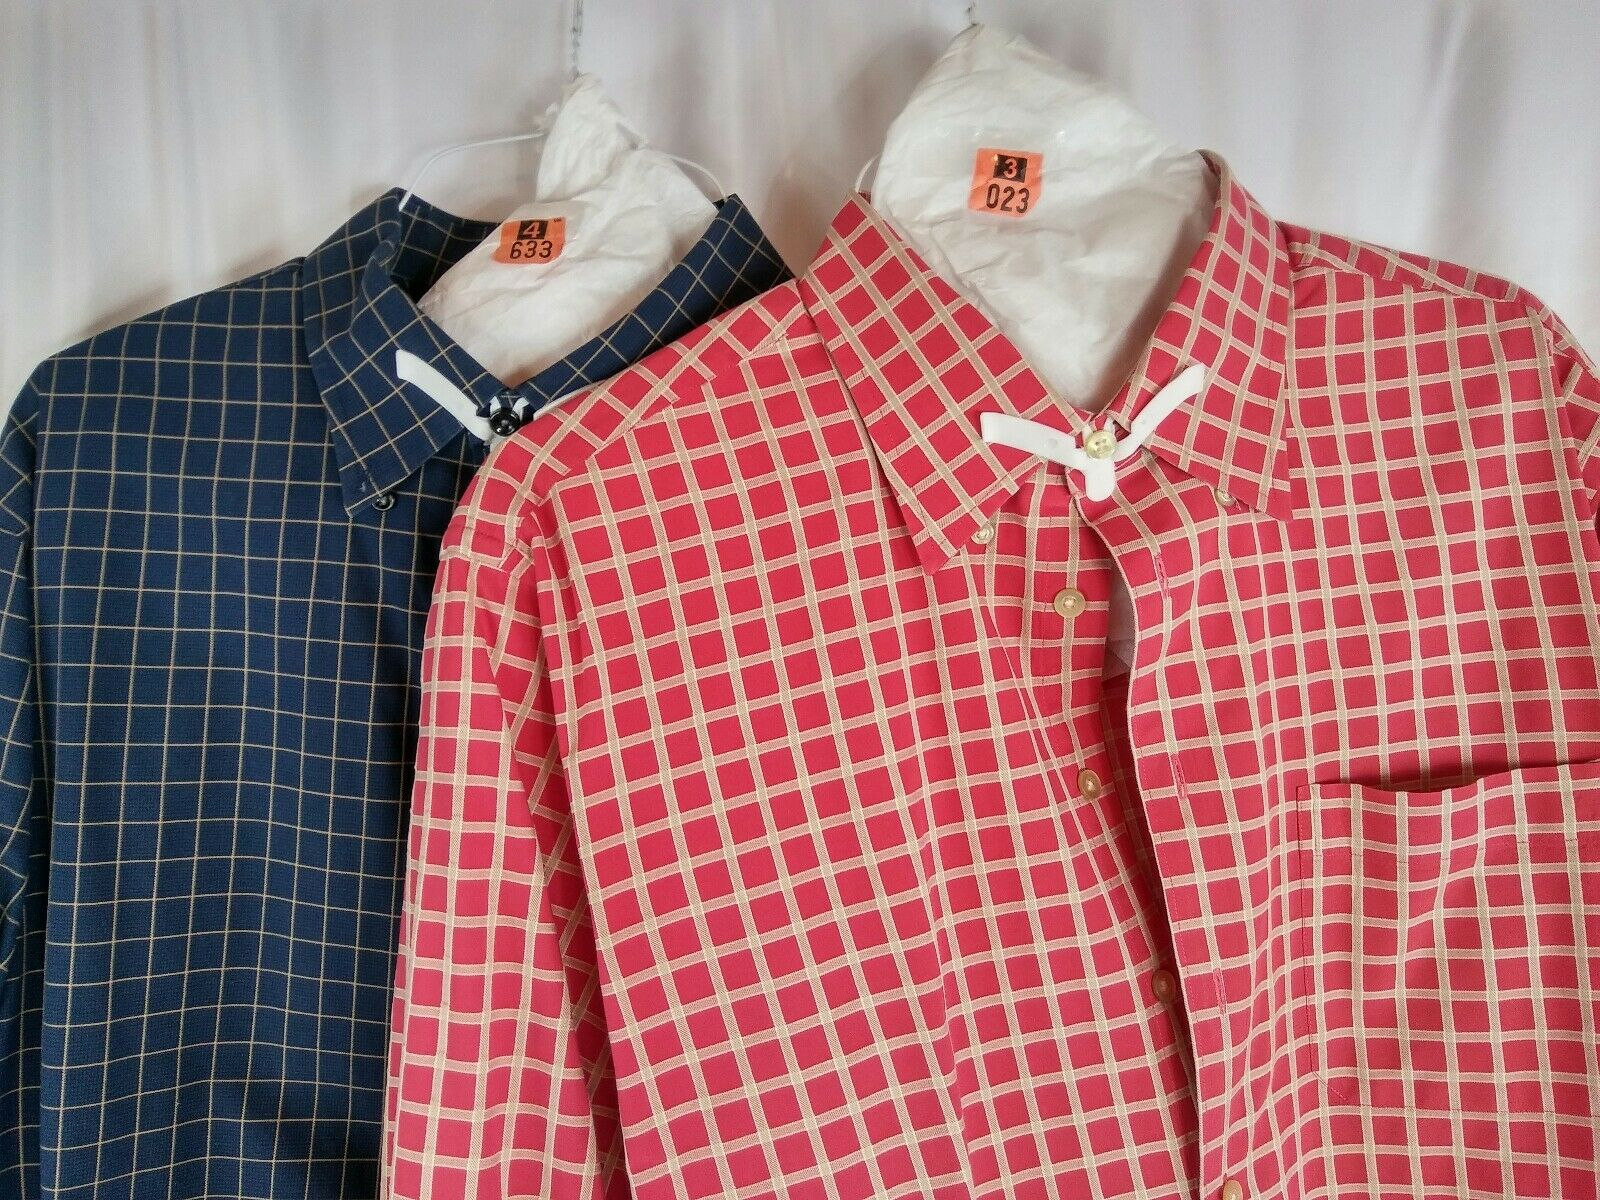 2 Scott Barber Shirts XL bluee gold Red gold Windowpanes Button Down Long Sleeves